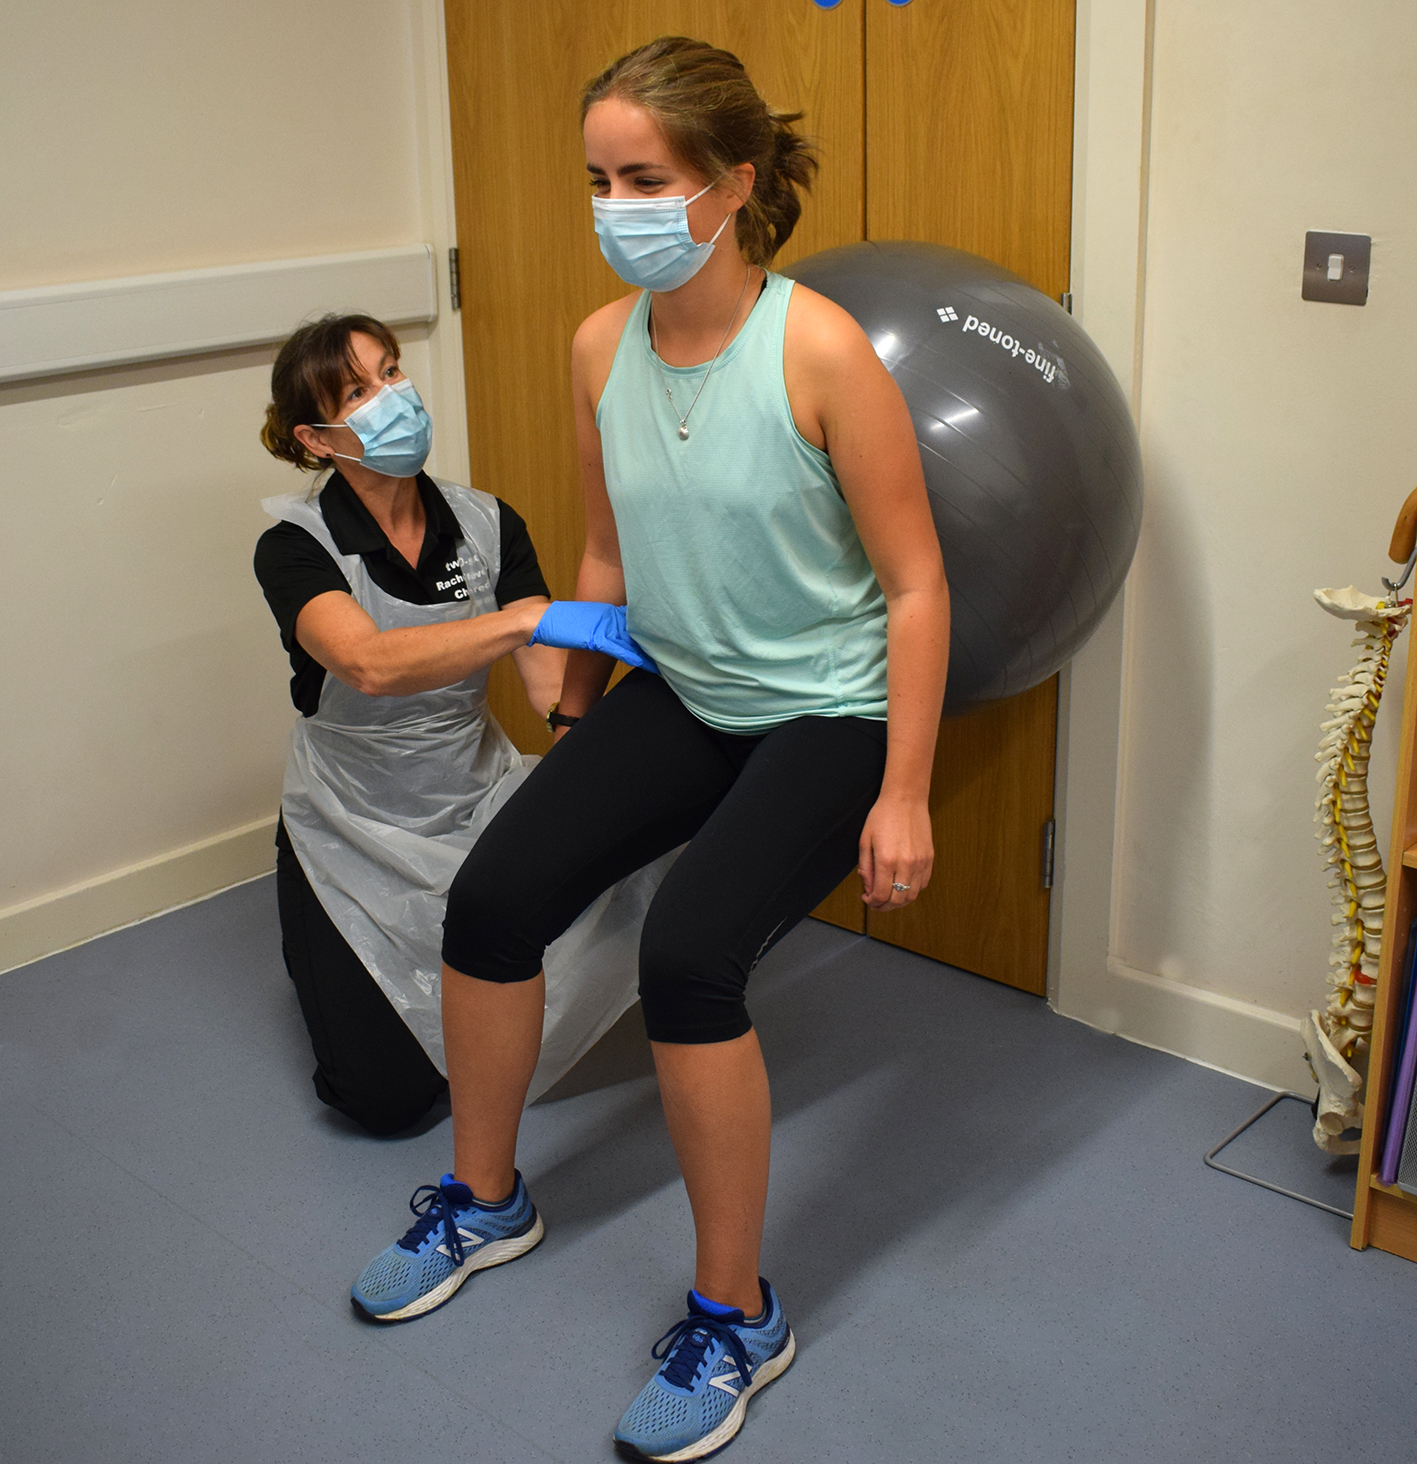 Ball physiotherapy